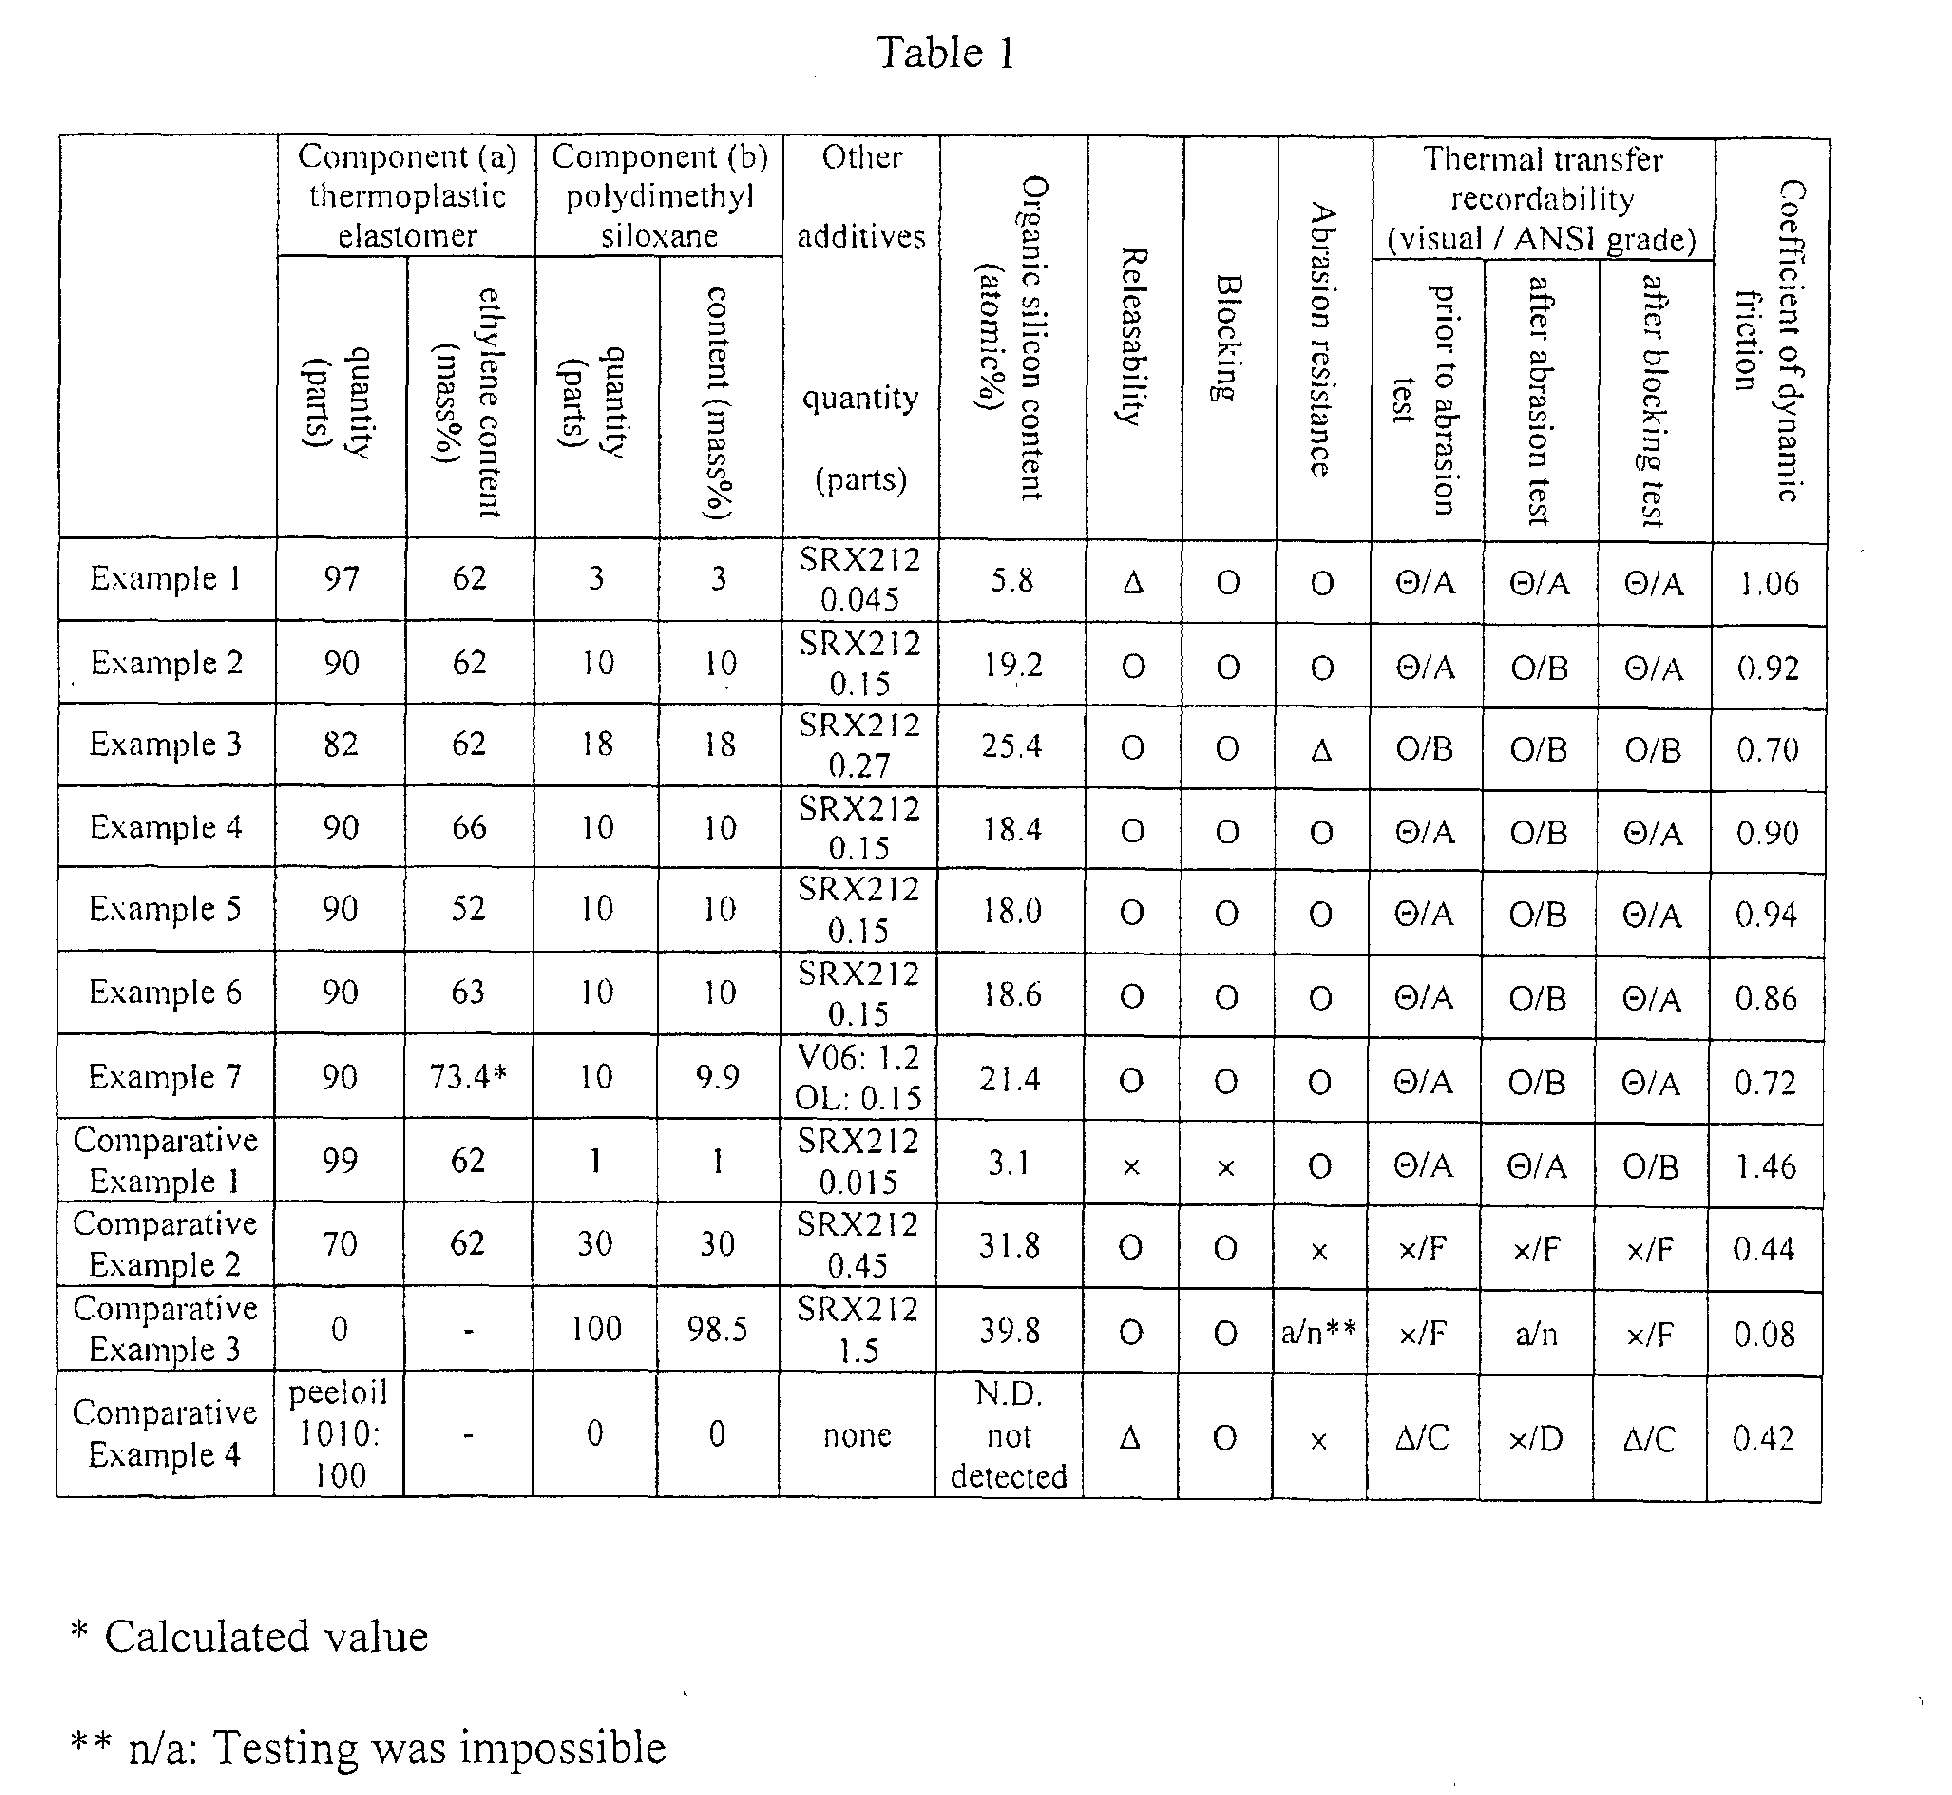 EP1371480A1 - Release sheet capable of thermal transfer